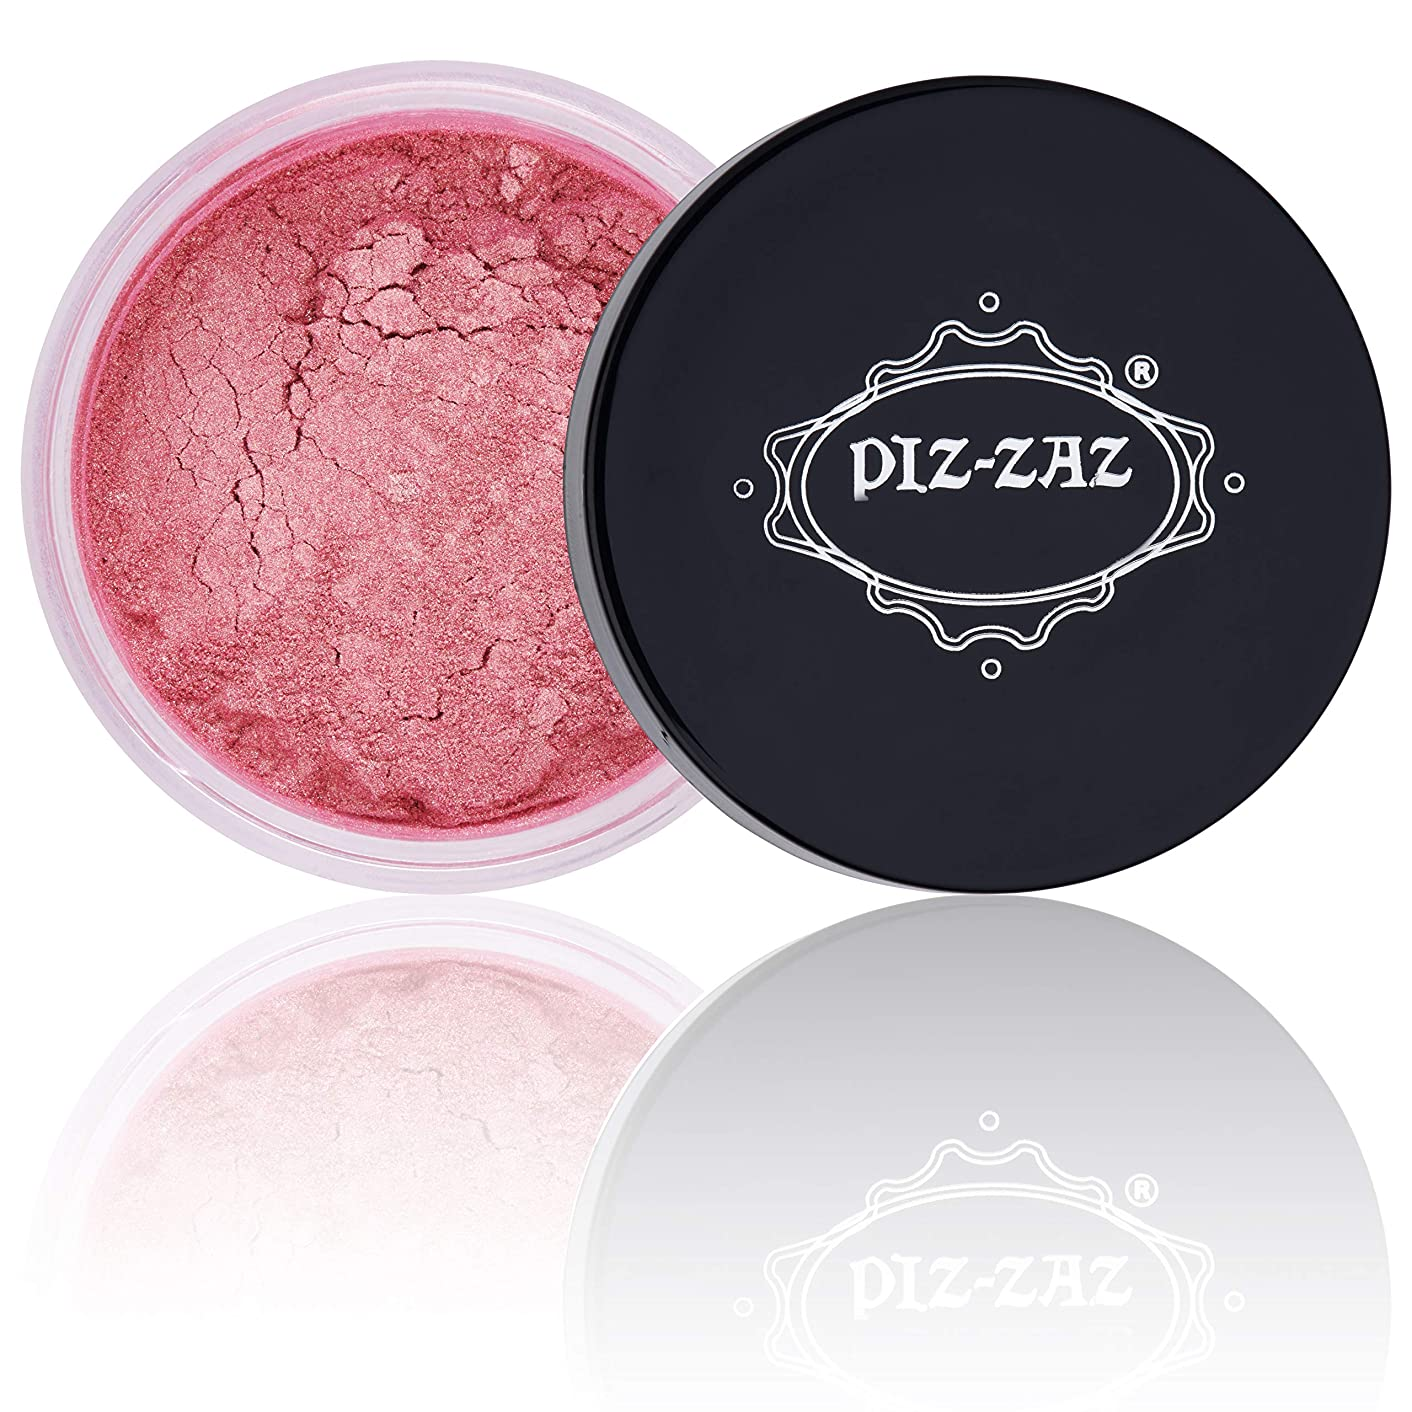 Mica Powder Pigment, Soap Making Supplies Kit - Powdered Pigment Dye for Creating Hand Soap, Slime, Bath Bombs, Soap Colorant, Candle Color Dye & More by PizZaz (Grapefruit)